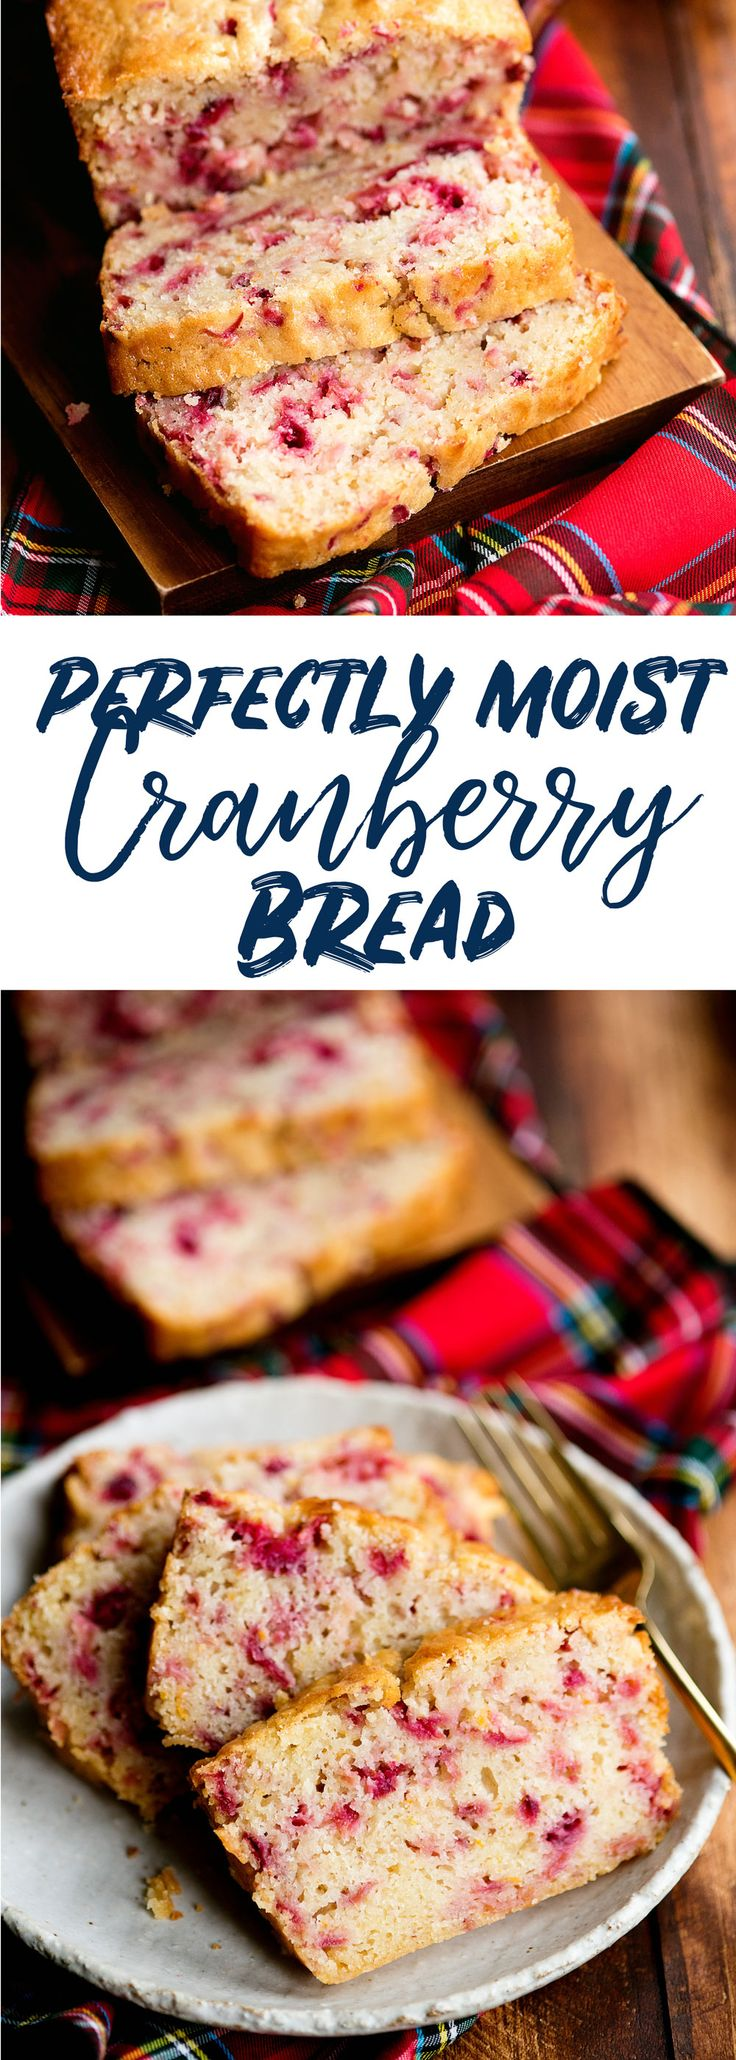 Tart and sweet cranberry bread recipe with just a tiny bit of crispness that protects each soft and moist slice. The best cranberry bread you'll ever eat. via @sideofsweet